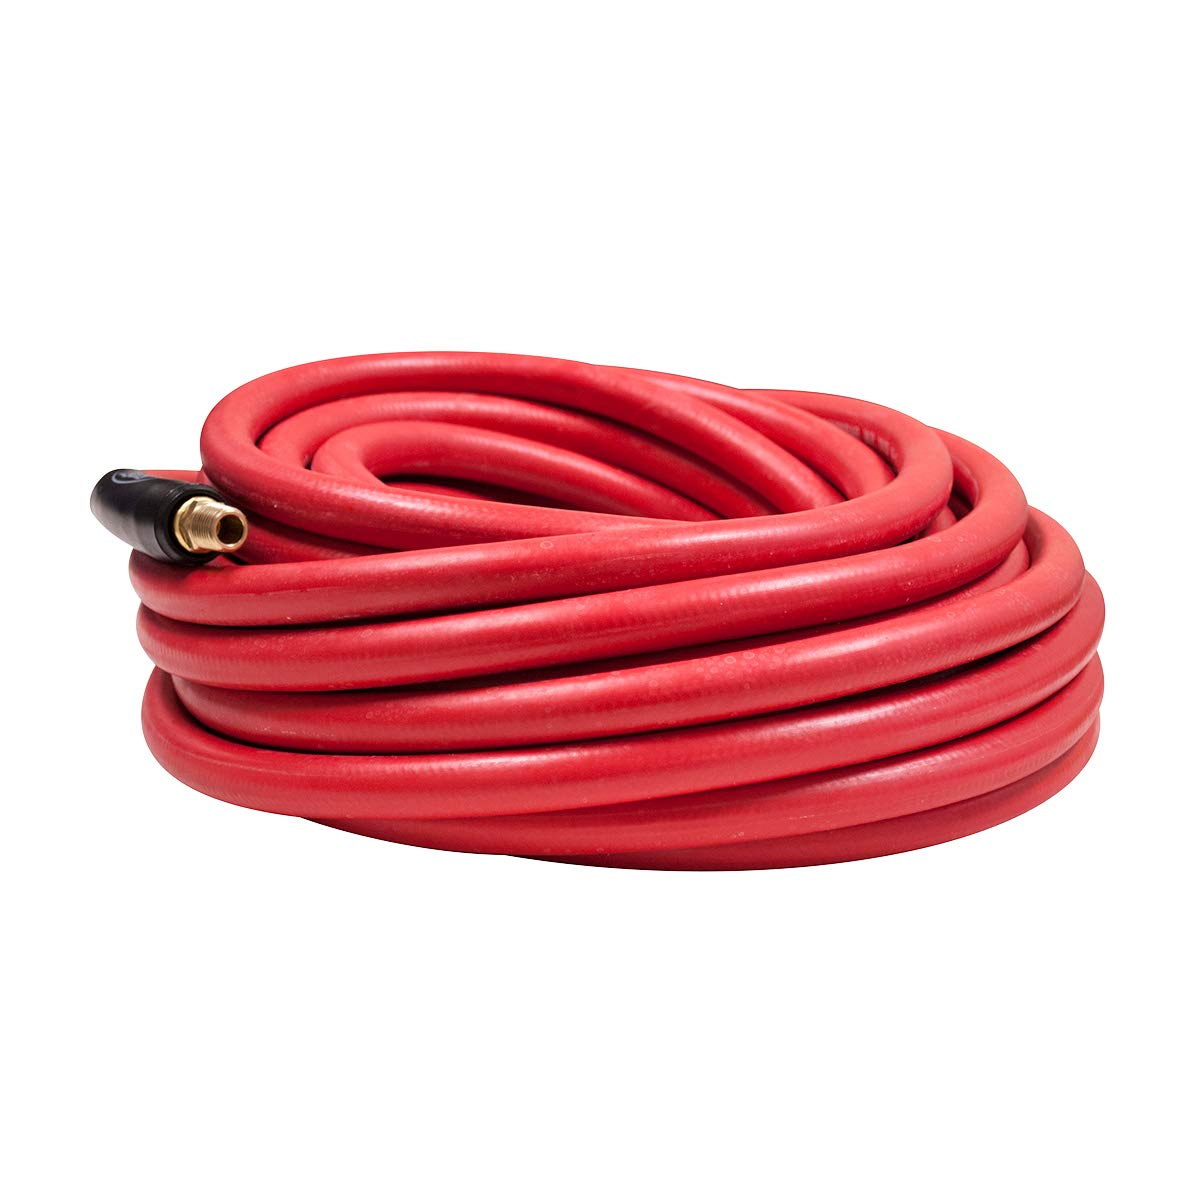 HRE3850RD2 Legacy 1//4 Fittings Red Rubber x 50 ft Workforce Air Hose 3//8 in